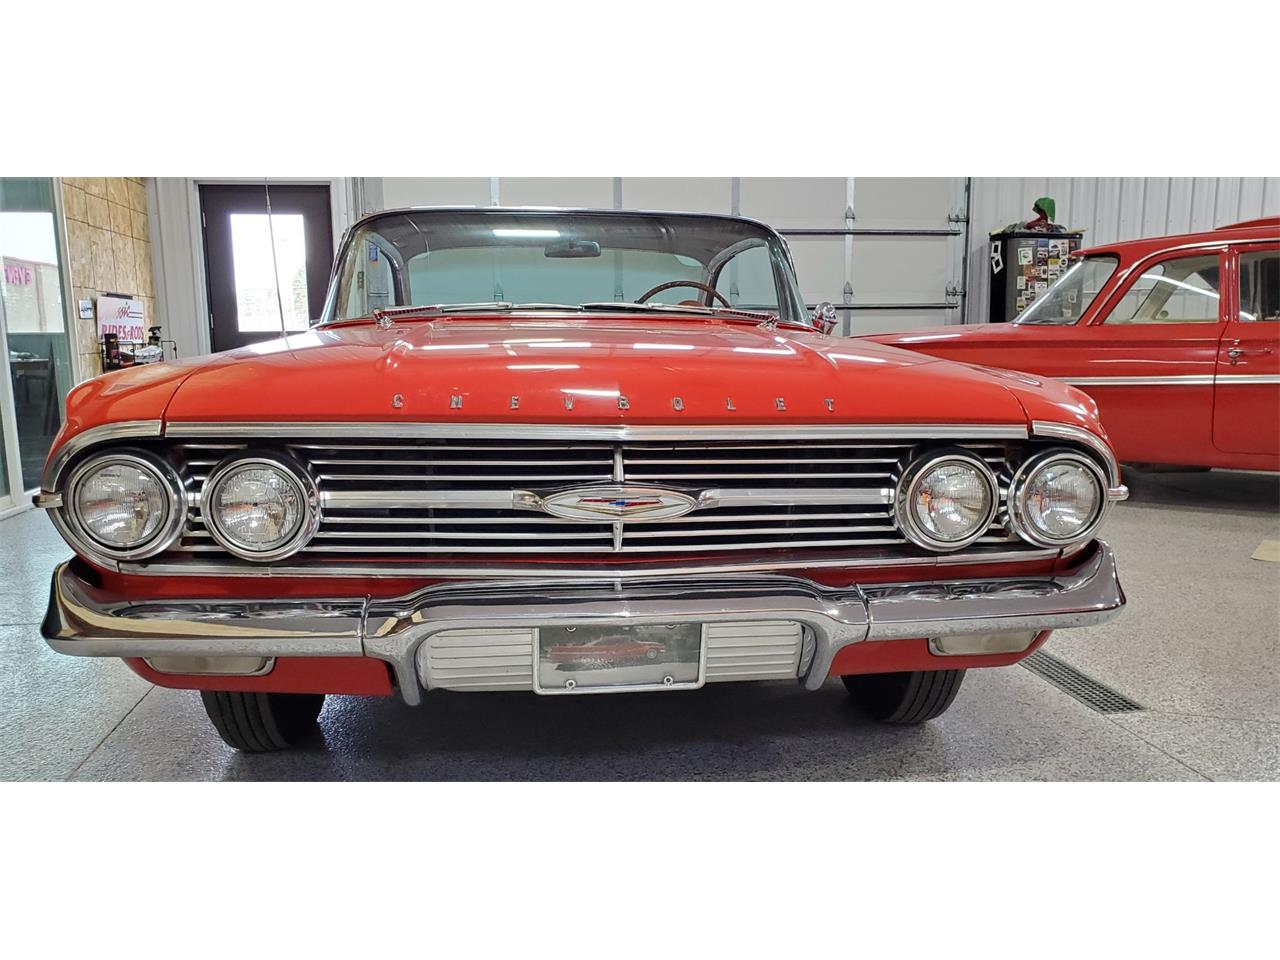 1960 Chevrolet Impala (CC-1340022) for sale in Annandale, Minnesota